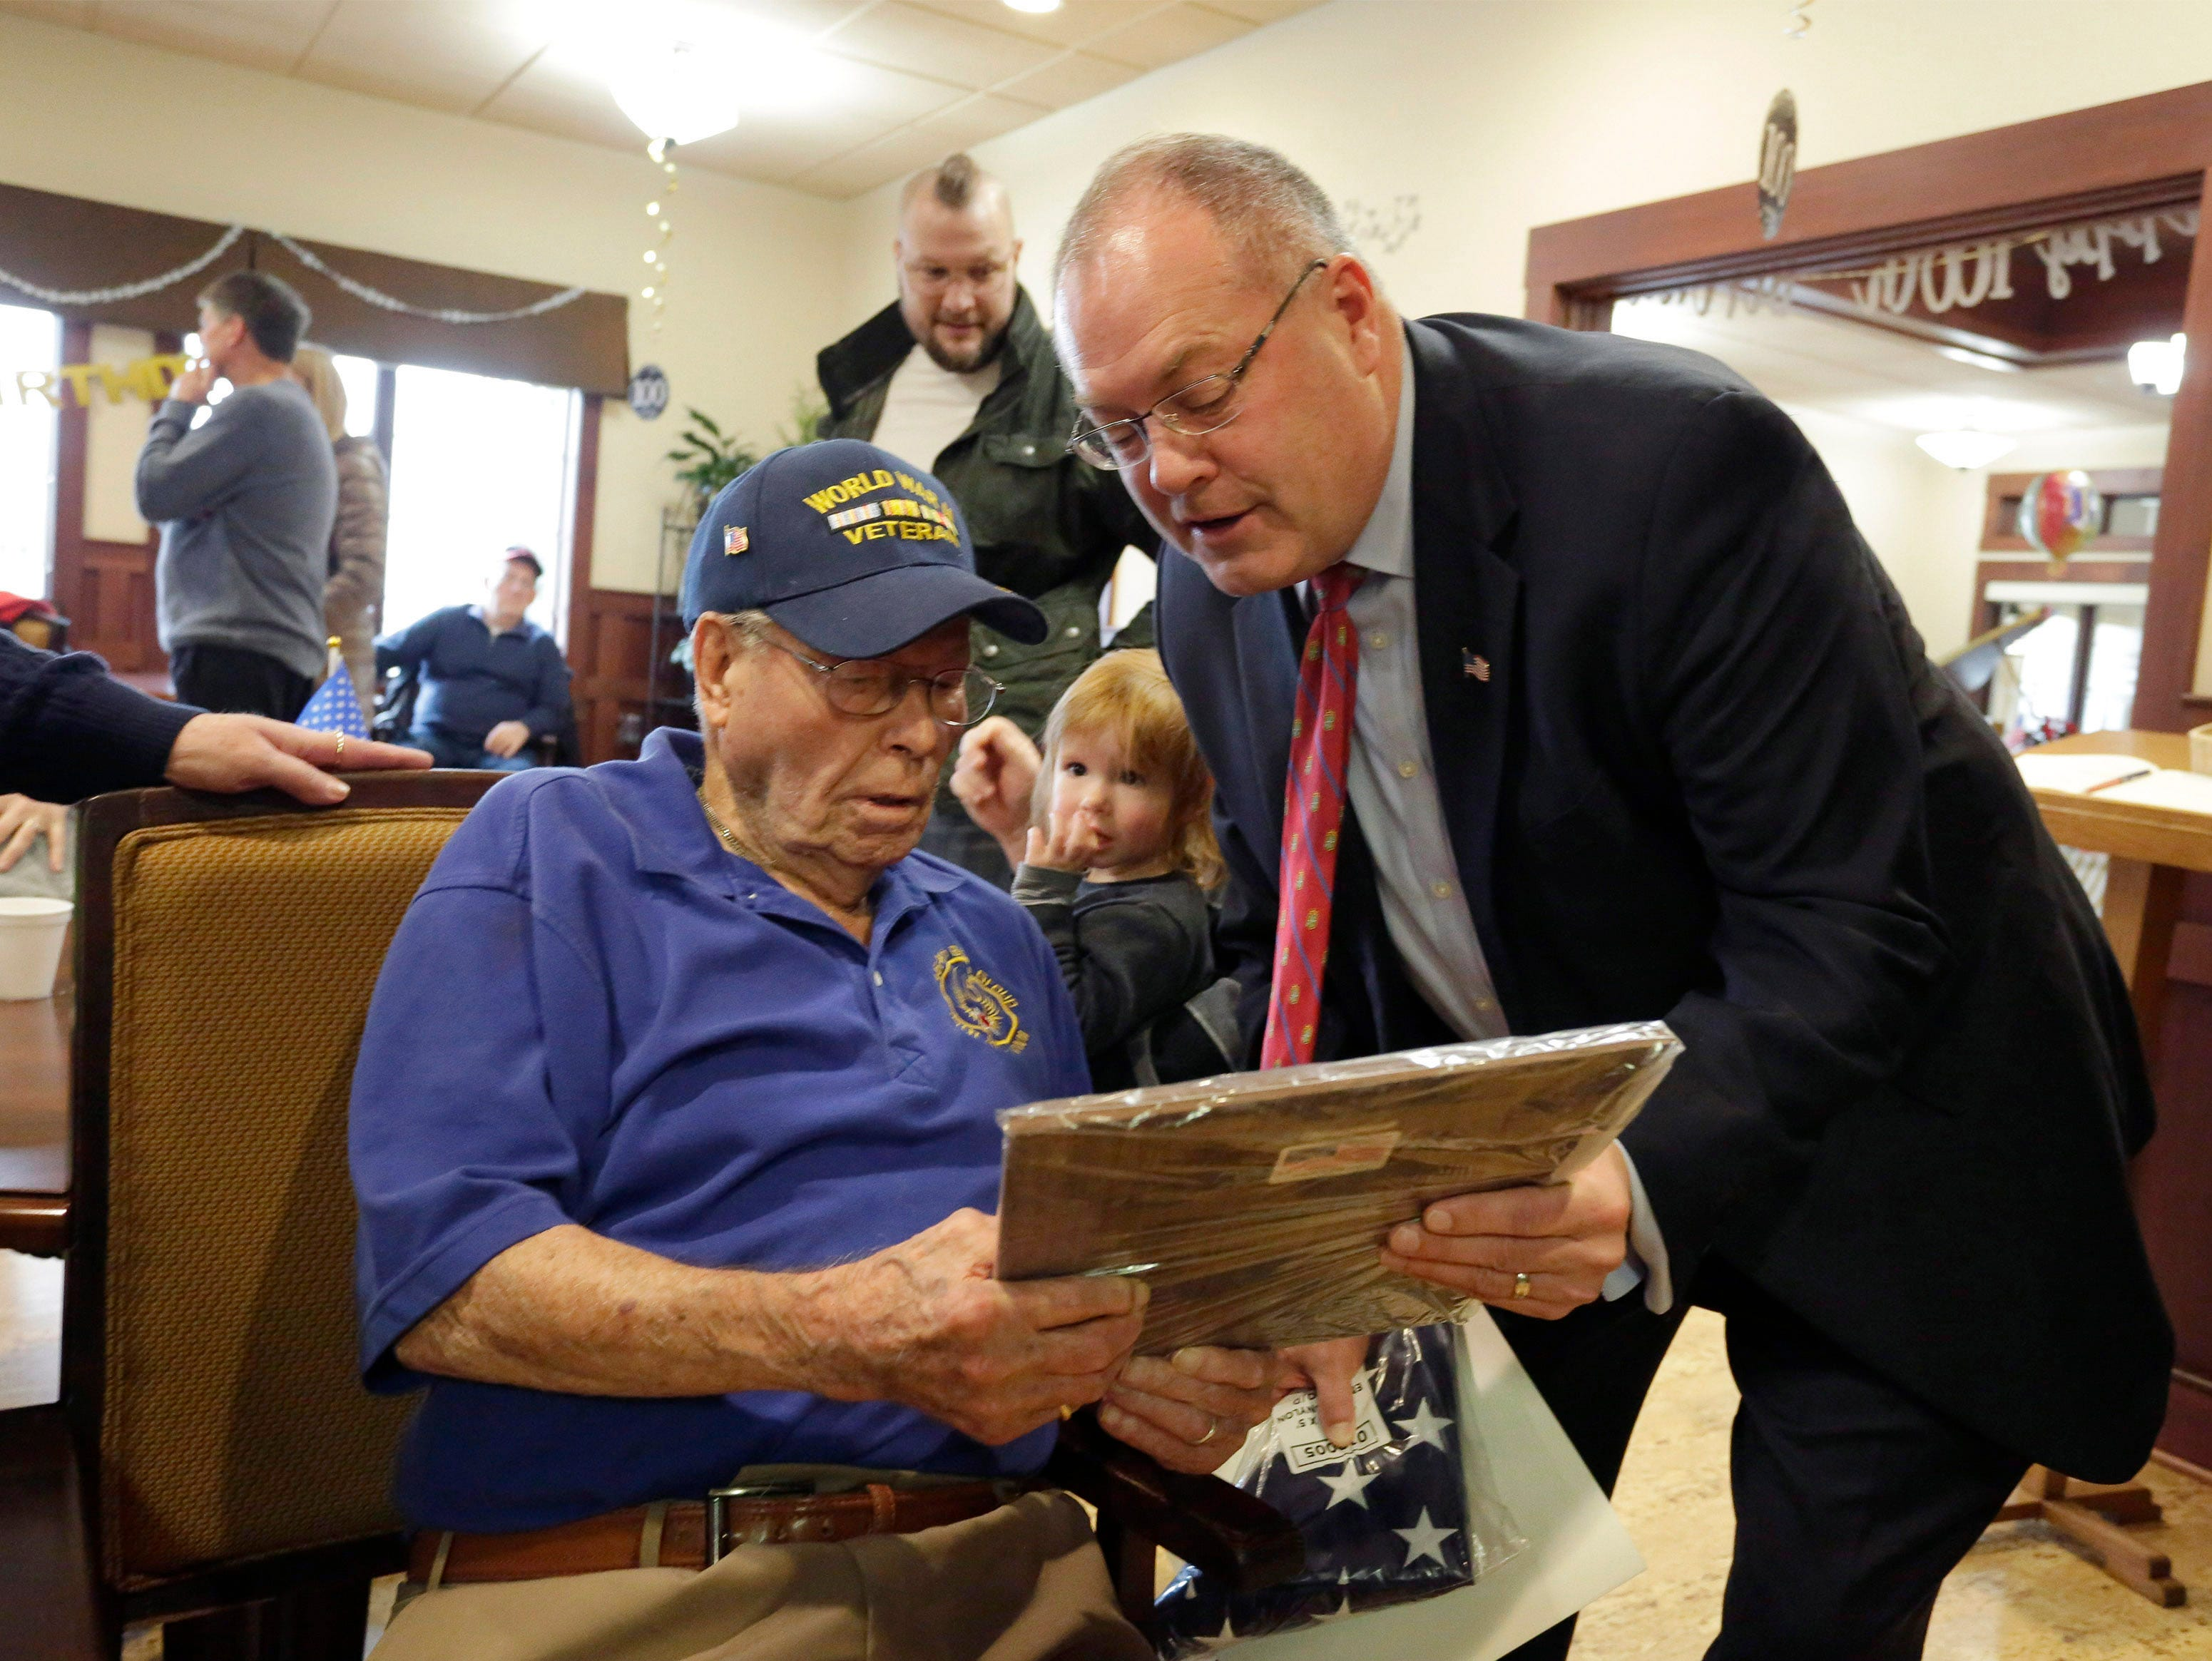 State Representative Terry Katsma, right, reads a proclamation honoring Don Harder for his years of service, Friday, January 18, 2019, at Pine Haven Christian Communities in Oostburg, Wis.  Harder, a World War II veteran, turned 100-years-old.